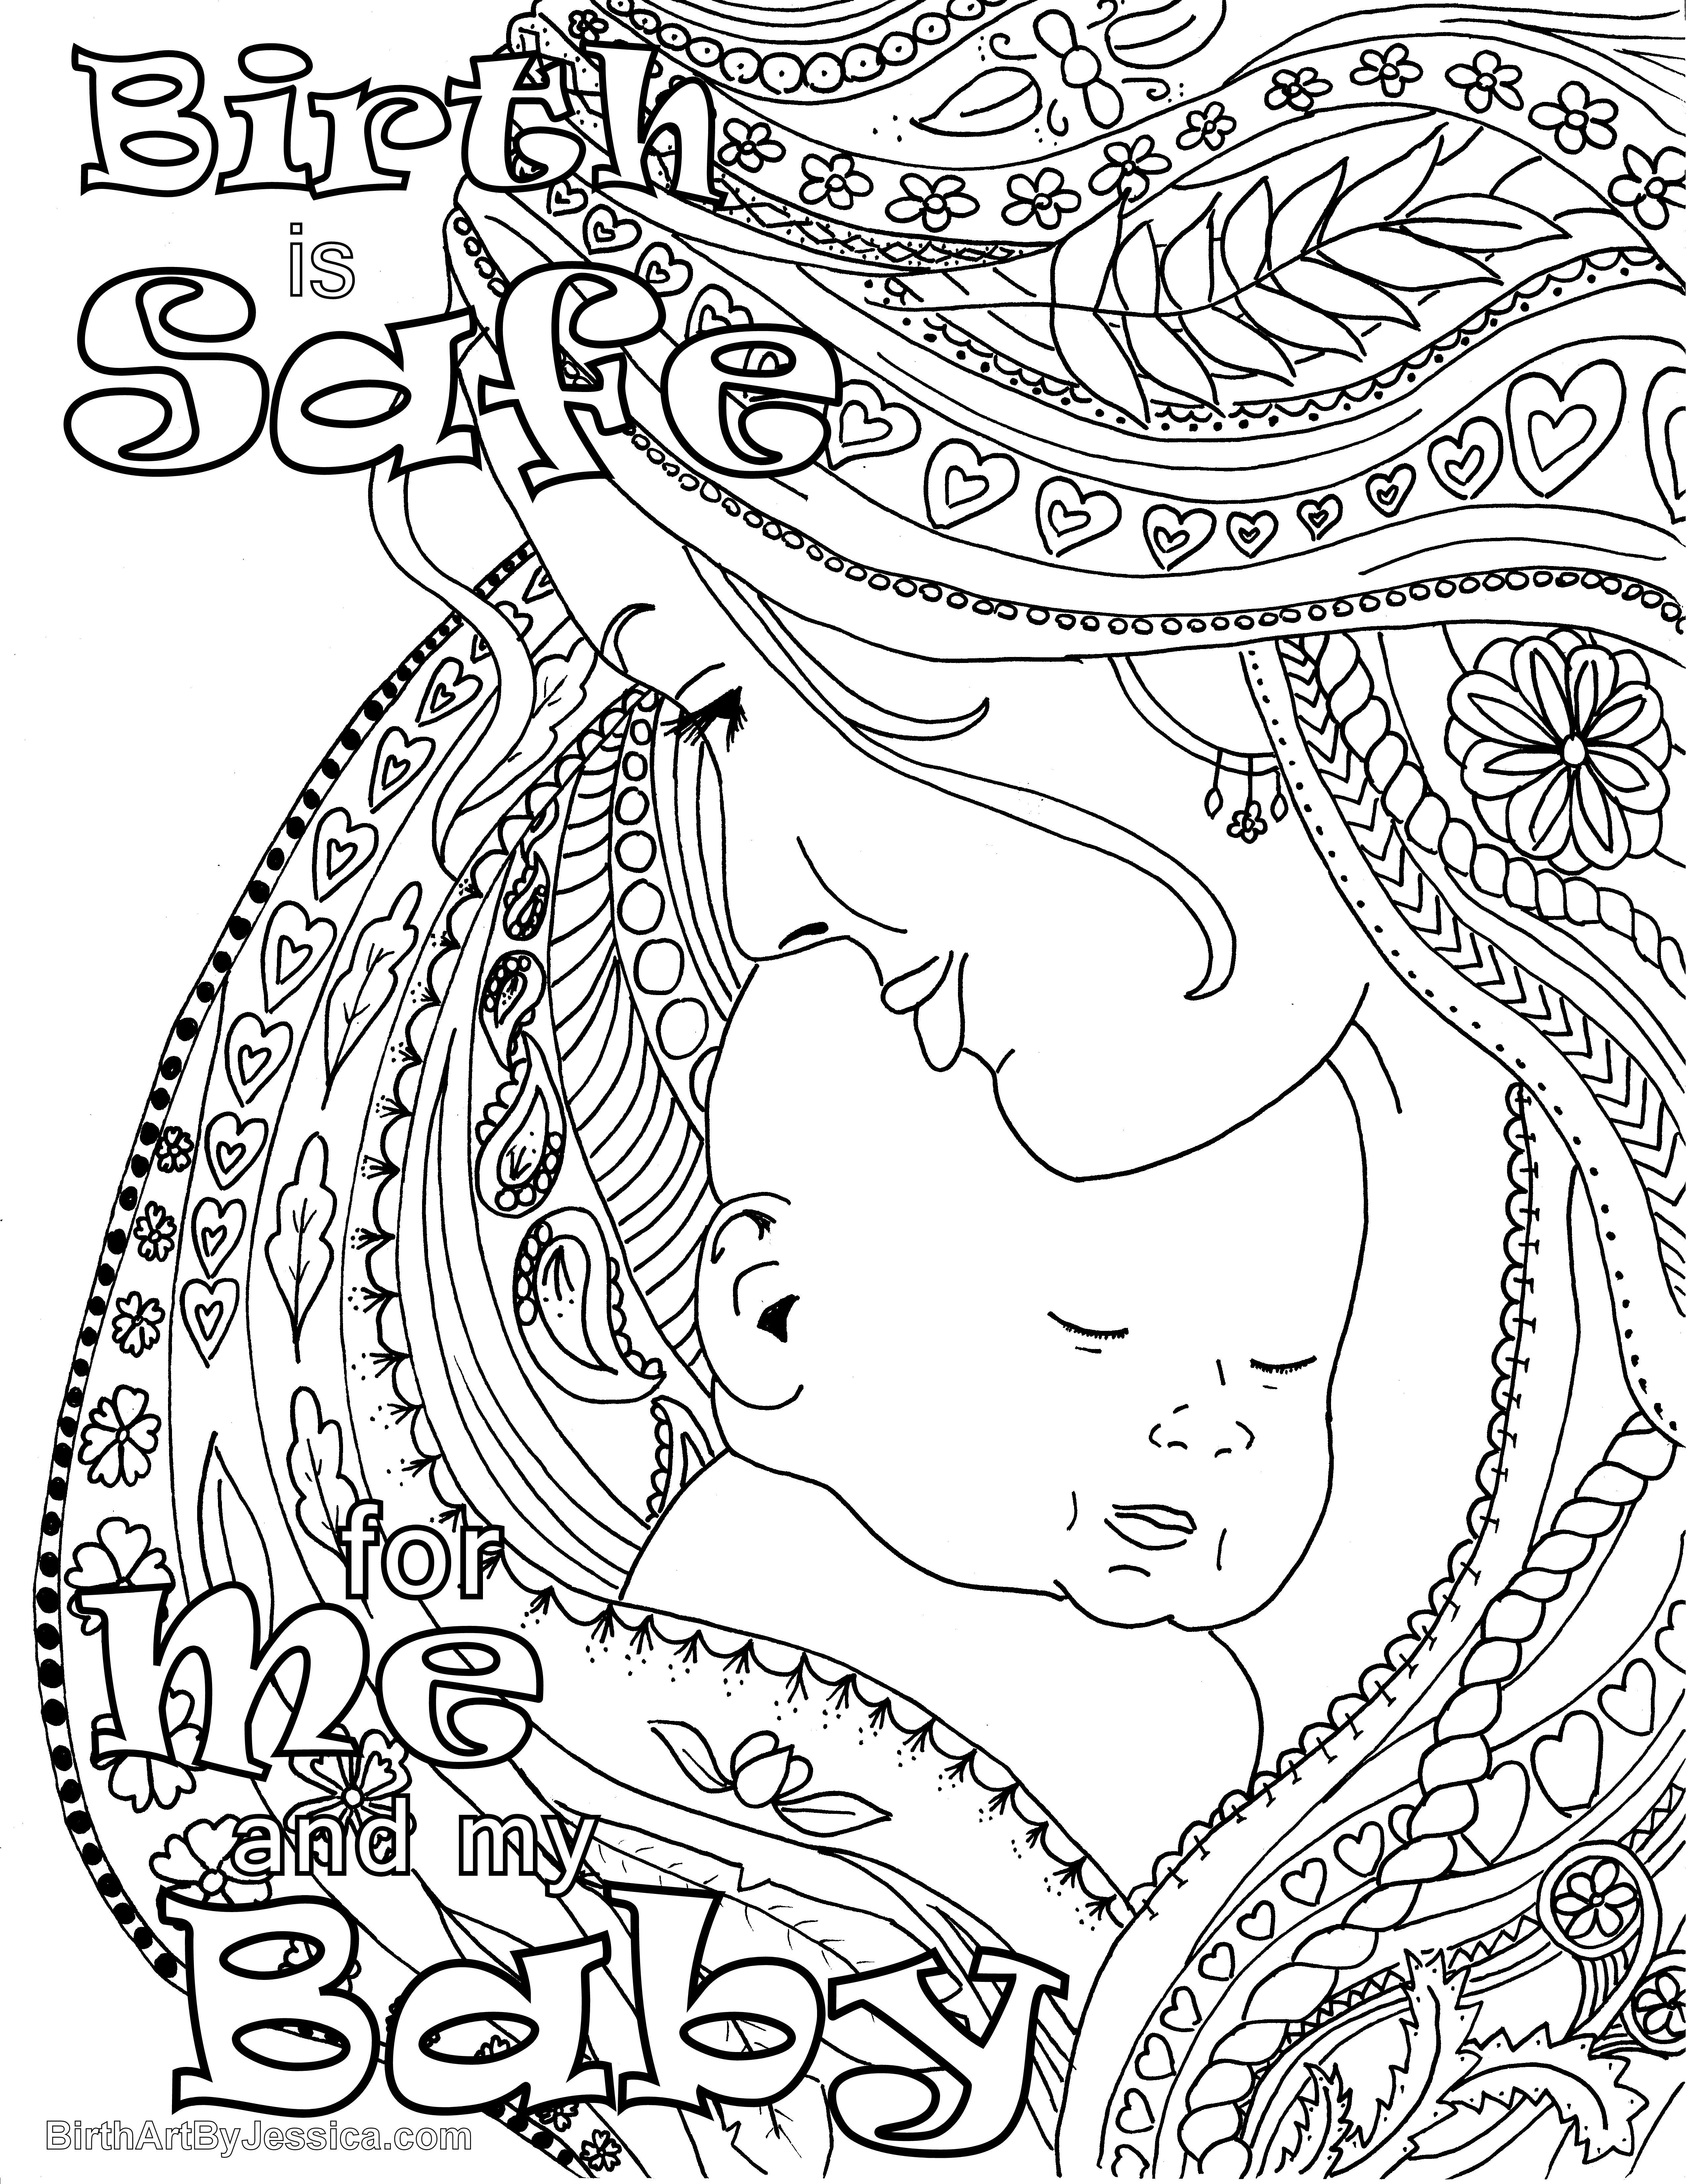 birth affirmation coloring page free printable birth is safe for me and my